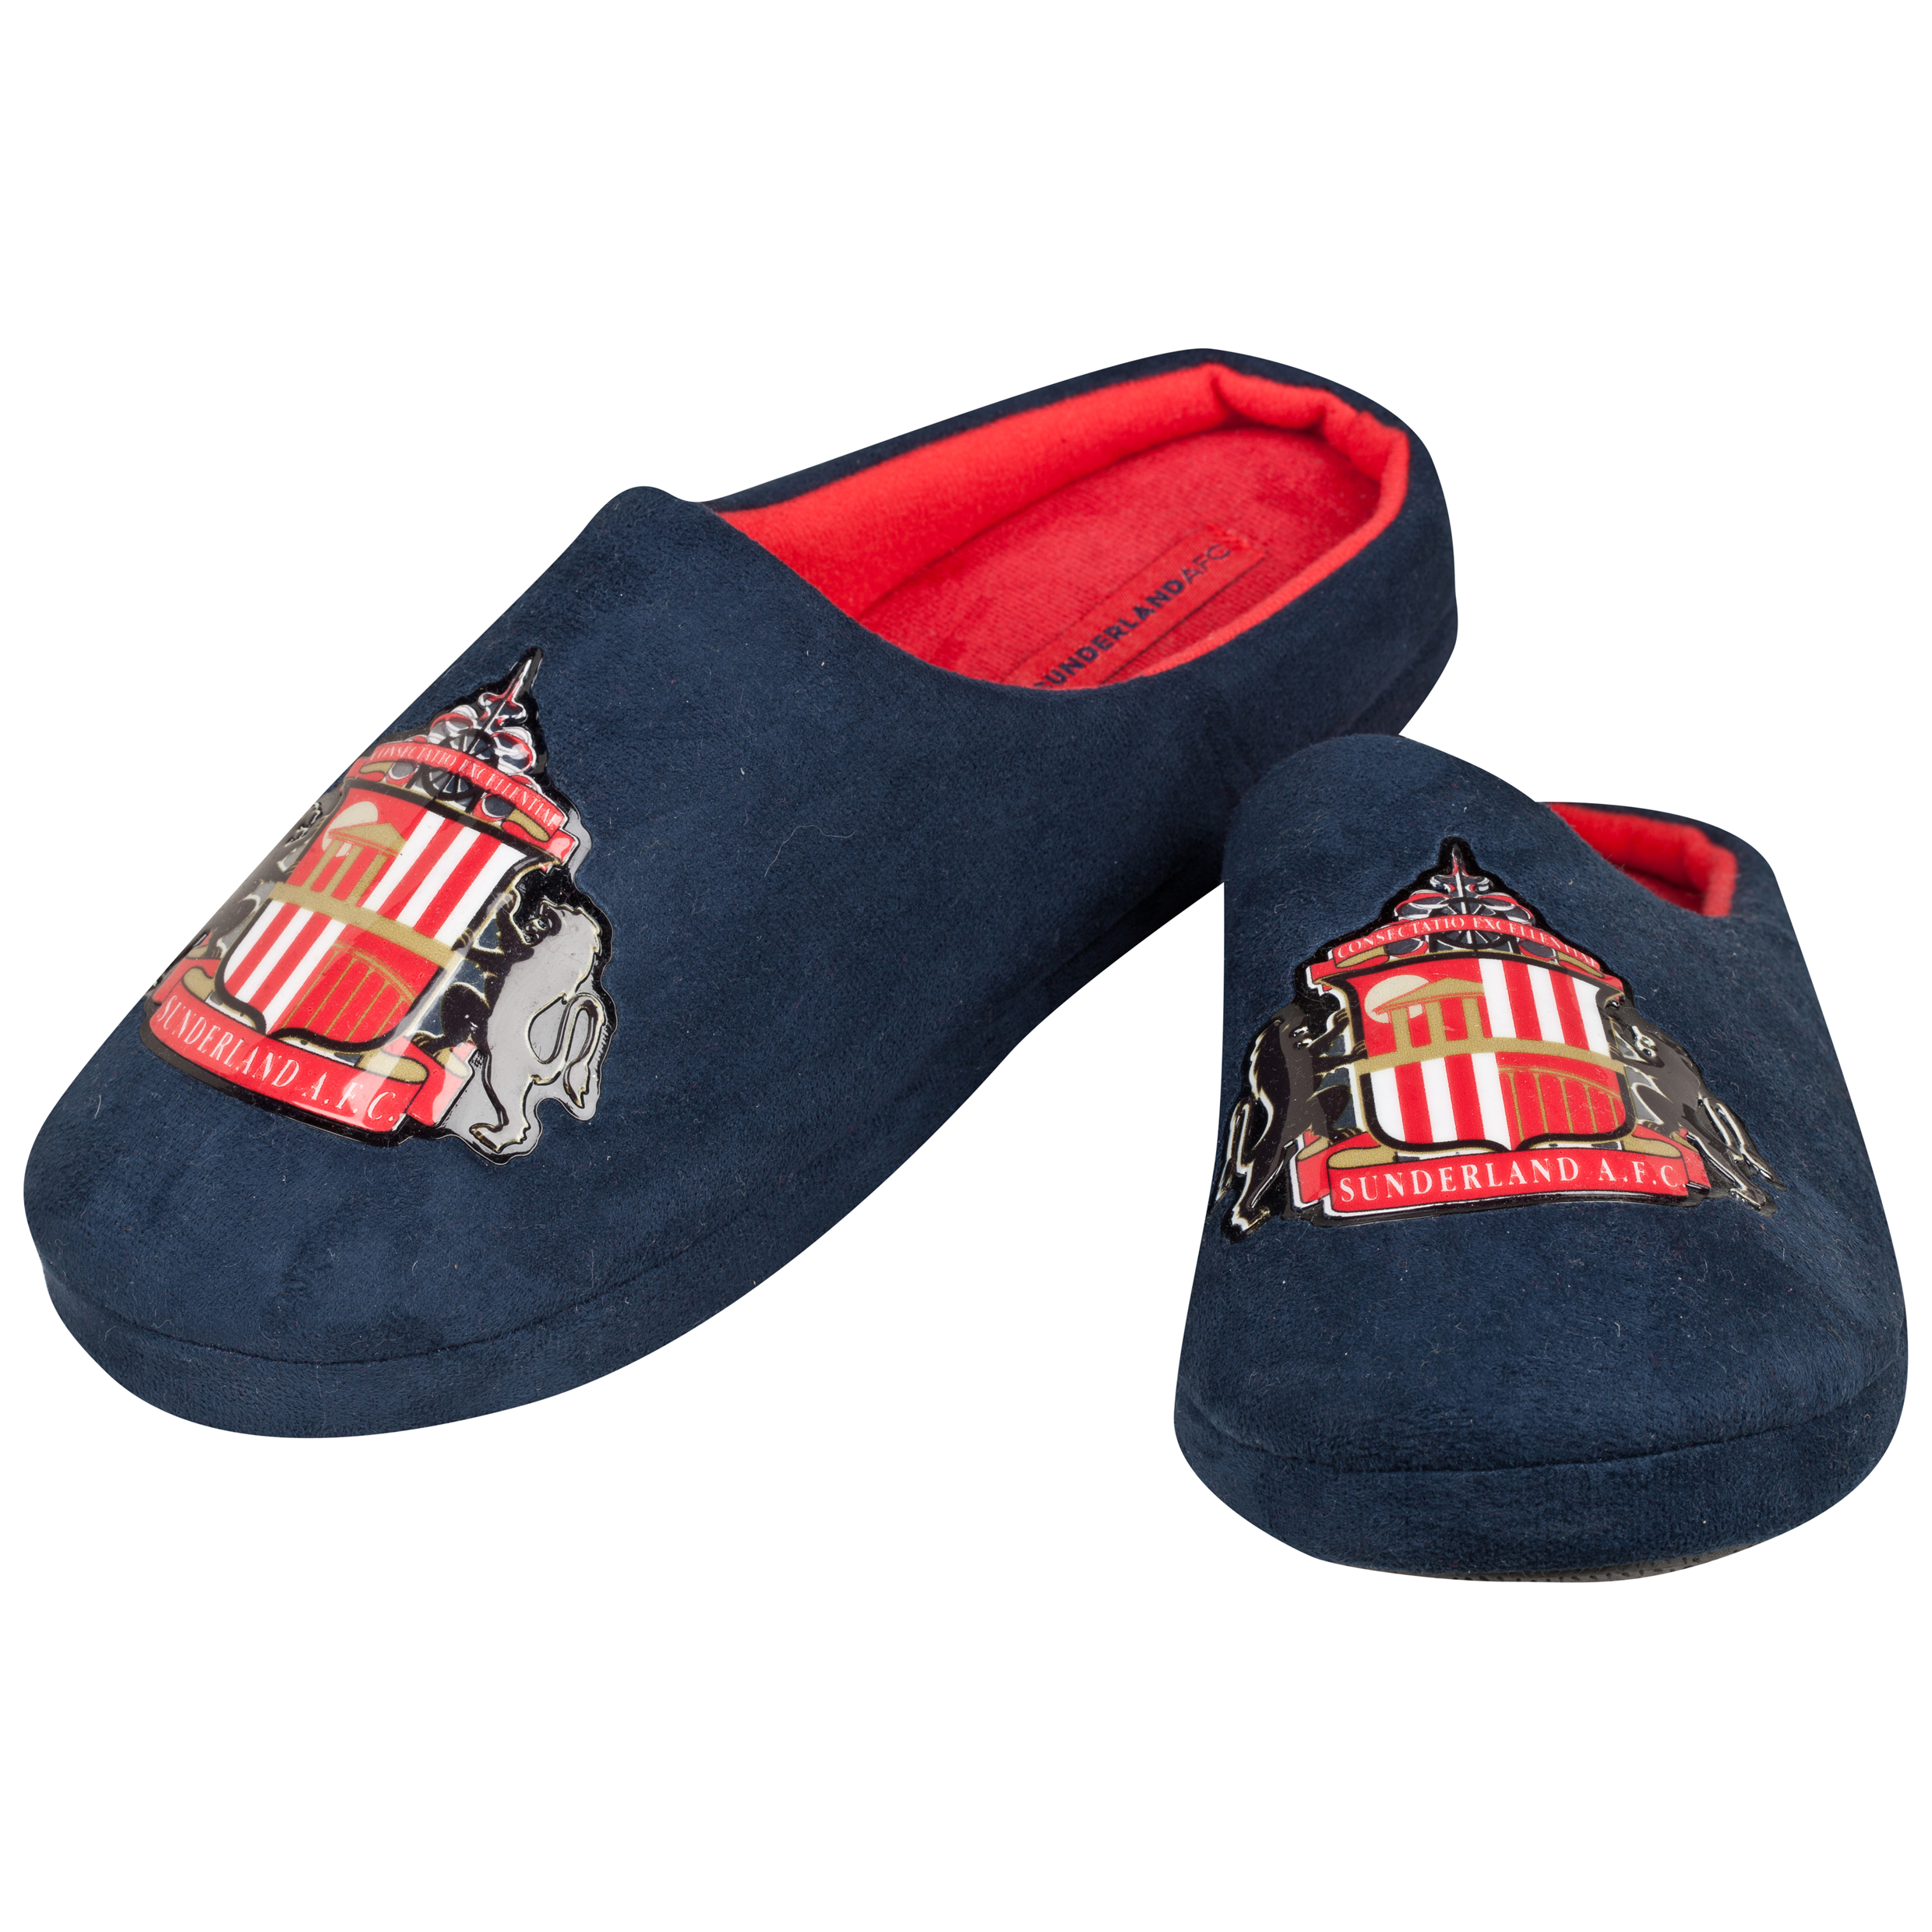 Sunderland Mason Slippers - Navy/Red - Mens Navy